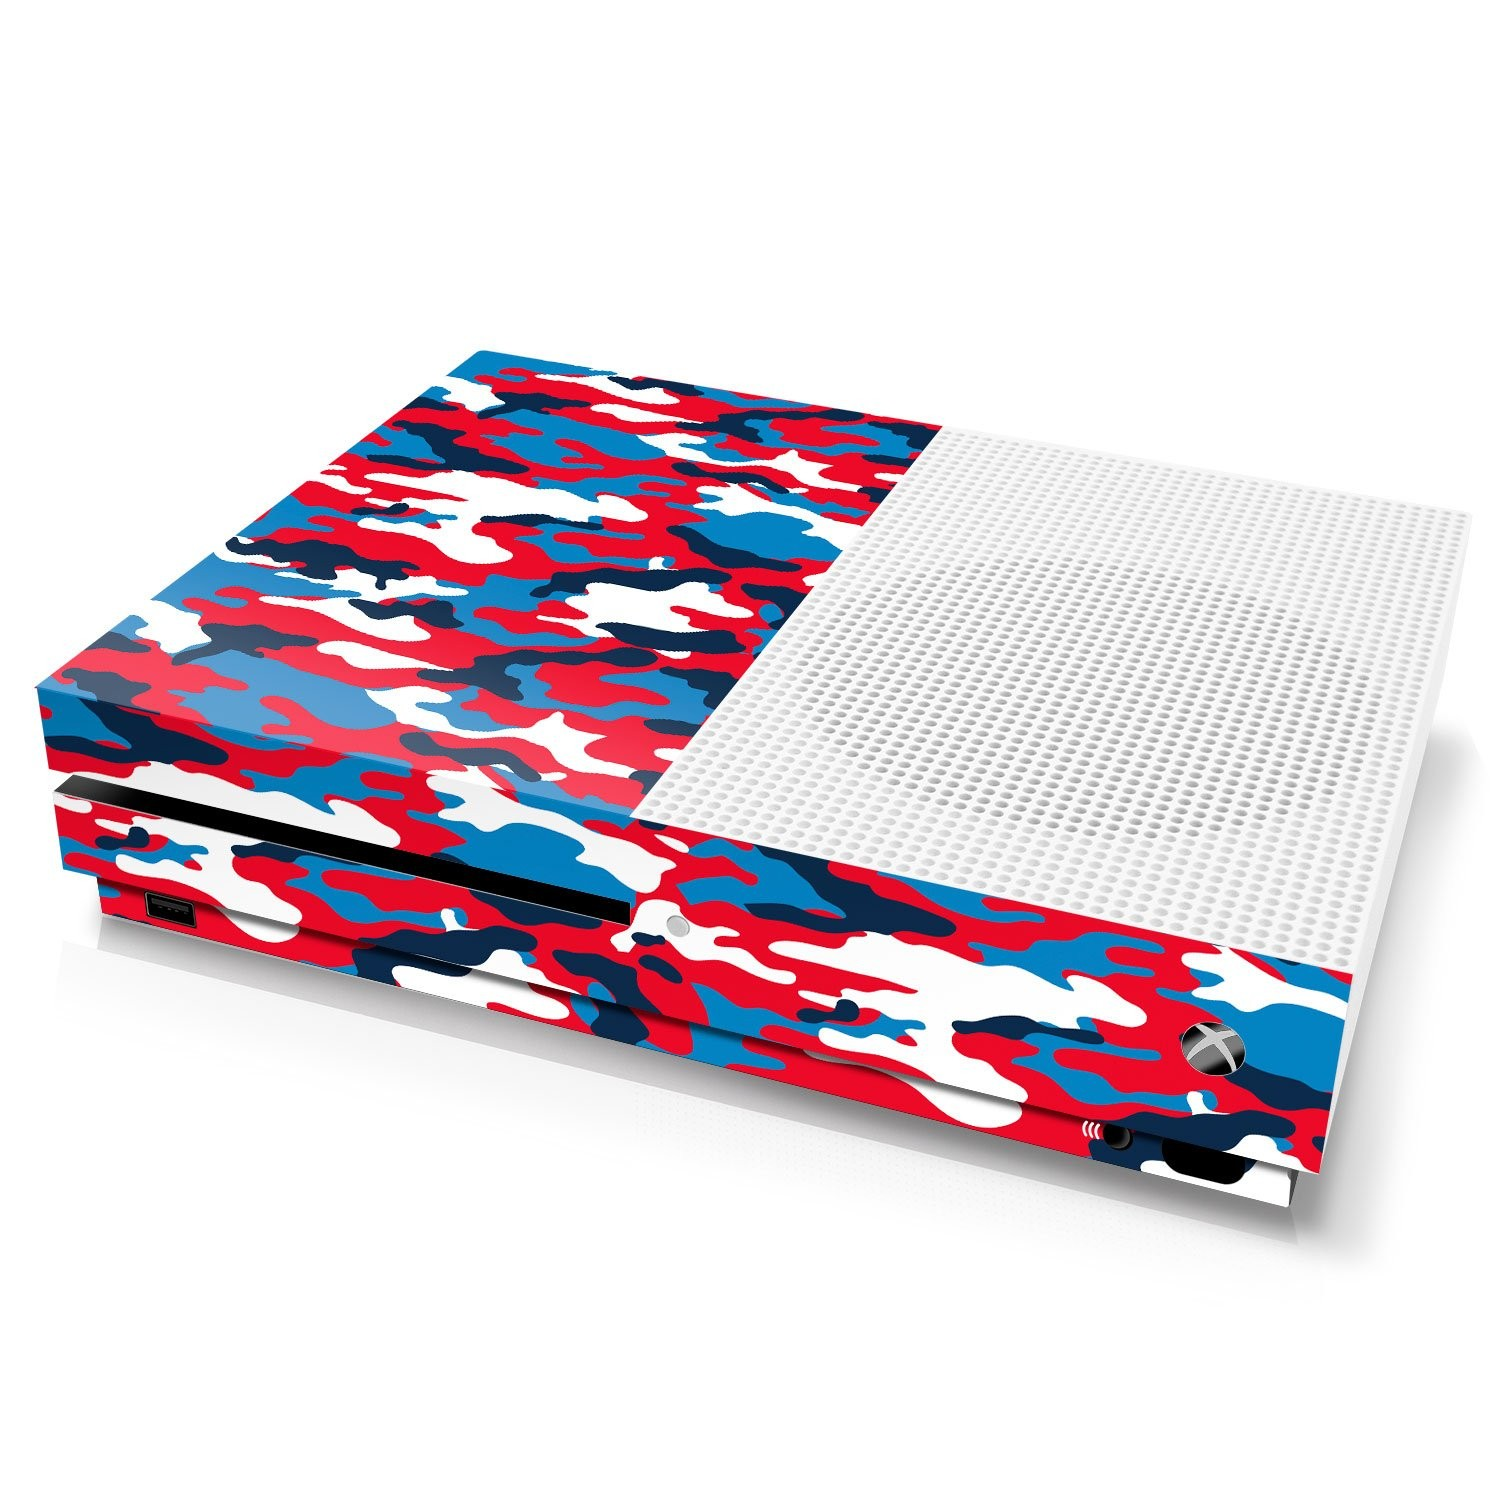 Xbox One S Console Skin - Camouflage: High Fashion - Officially Licensed by Xbox